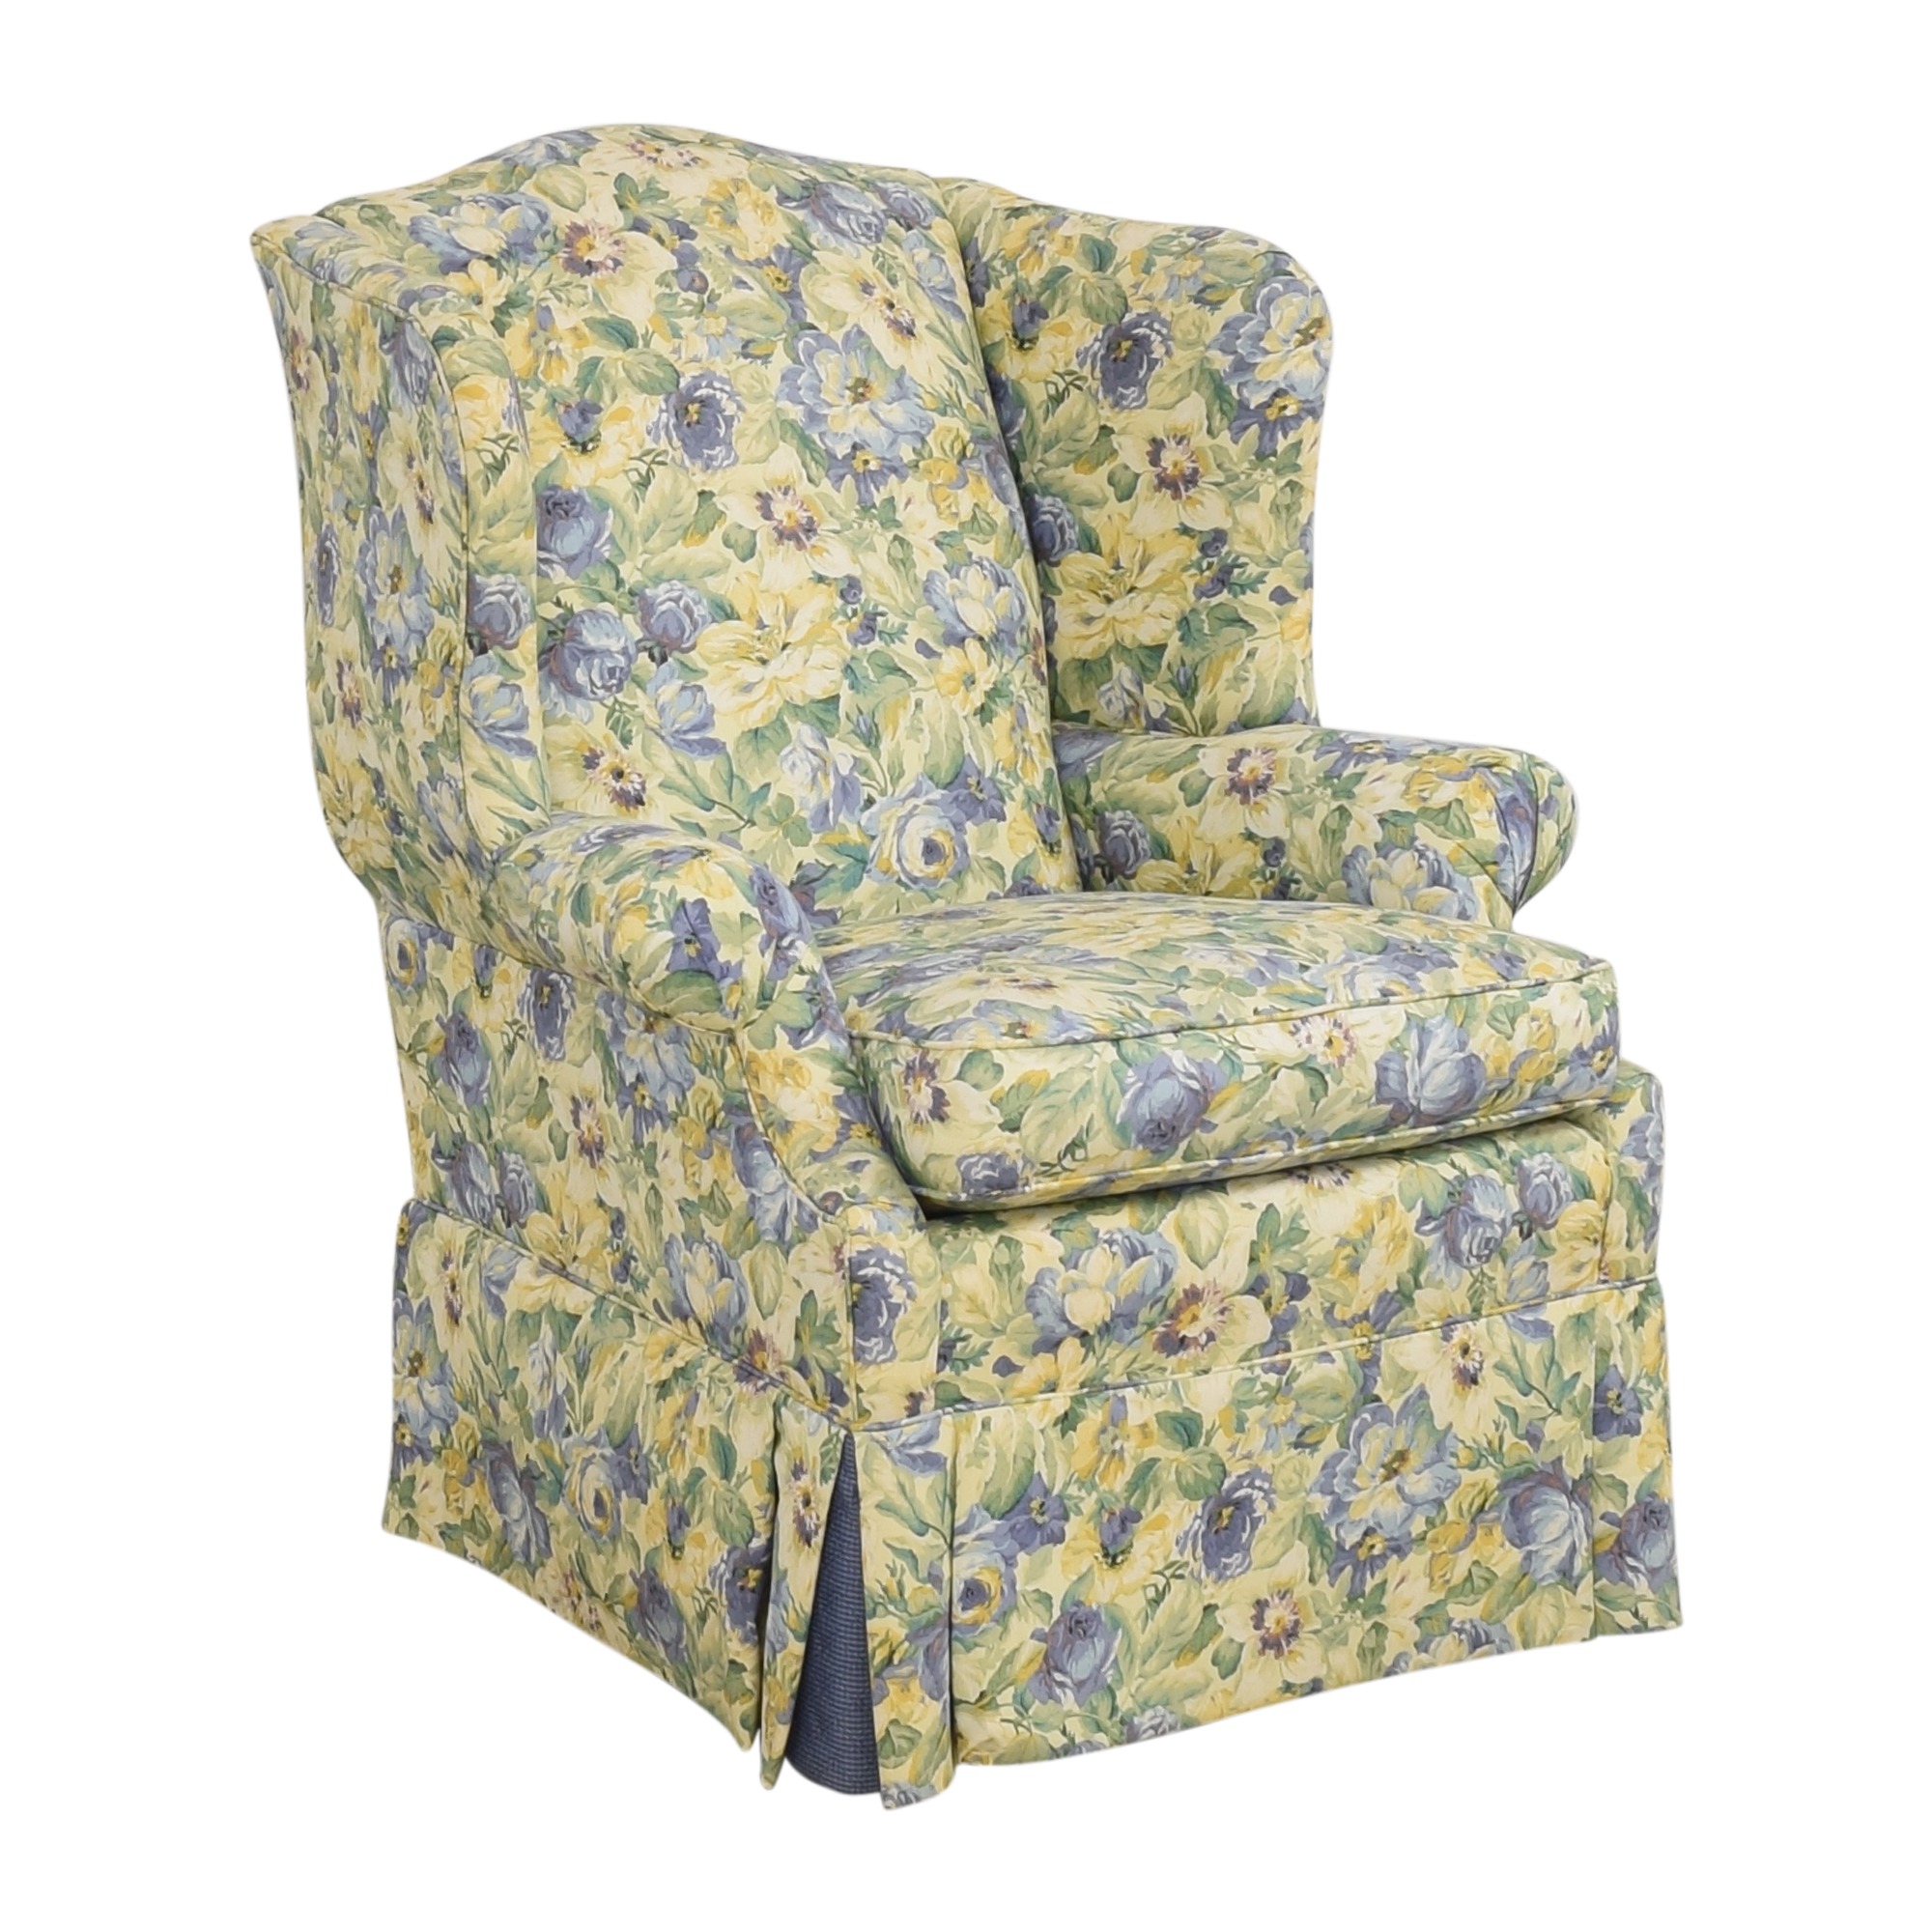 Ethan Allen Ethan Allen Skirted Wing Chair for sale